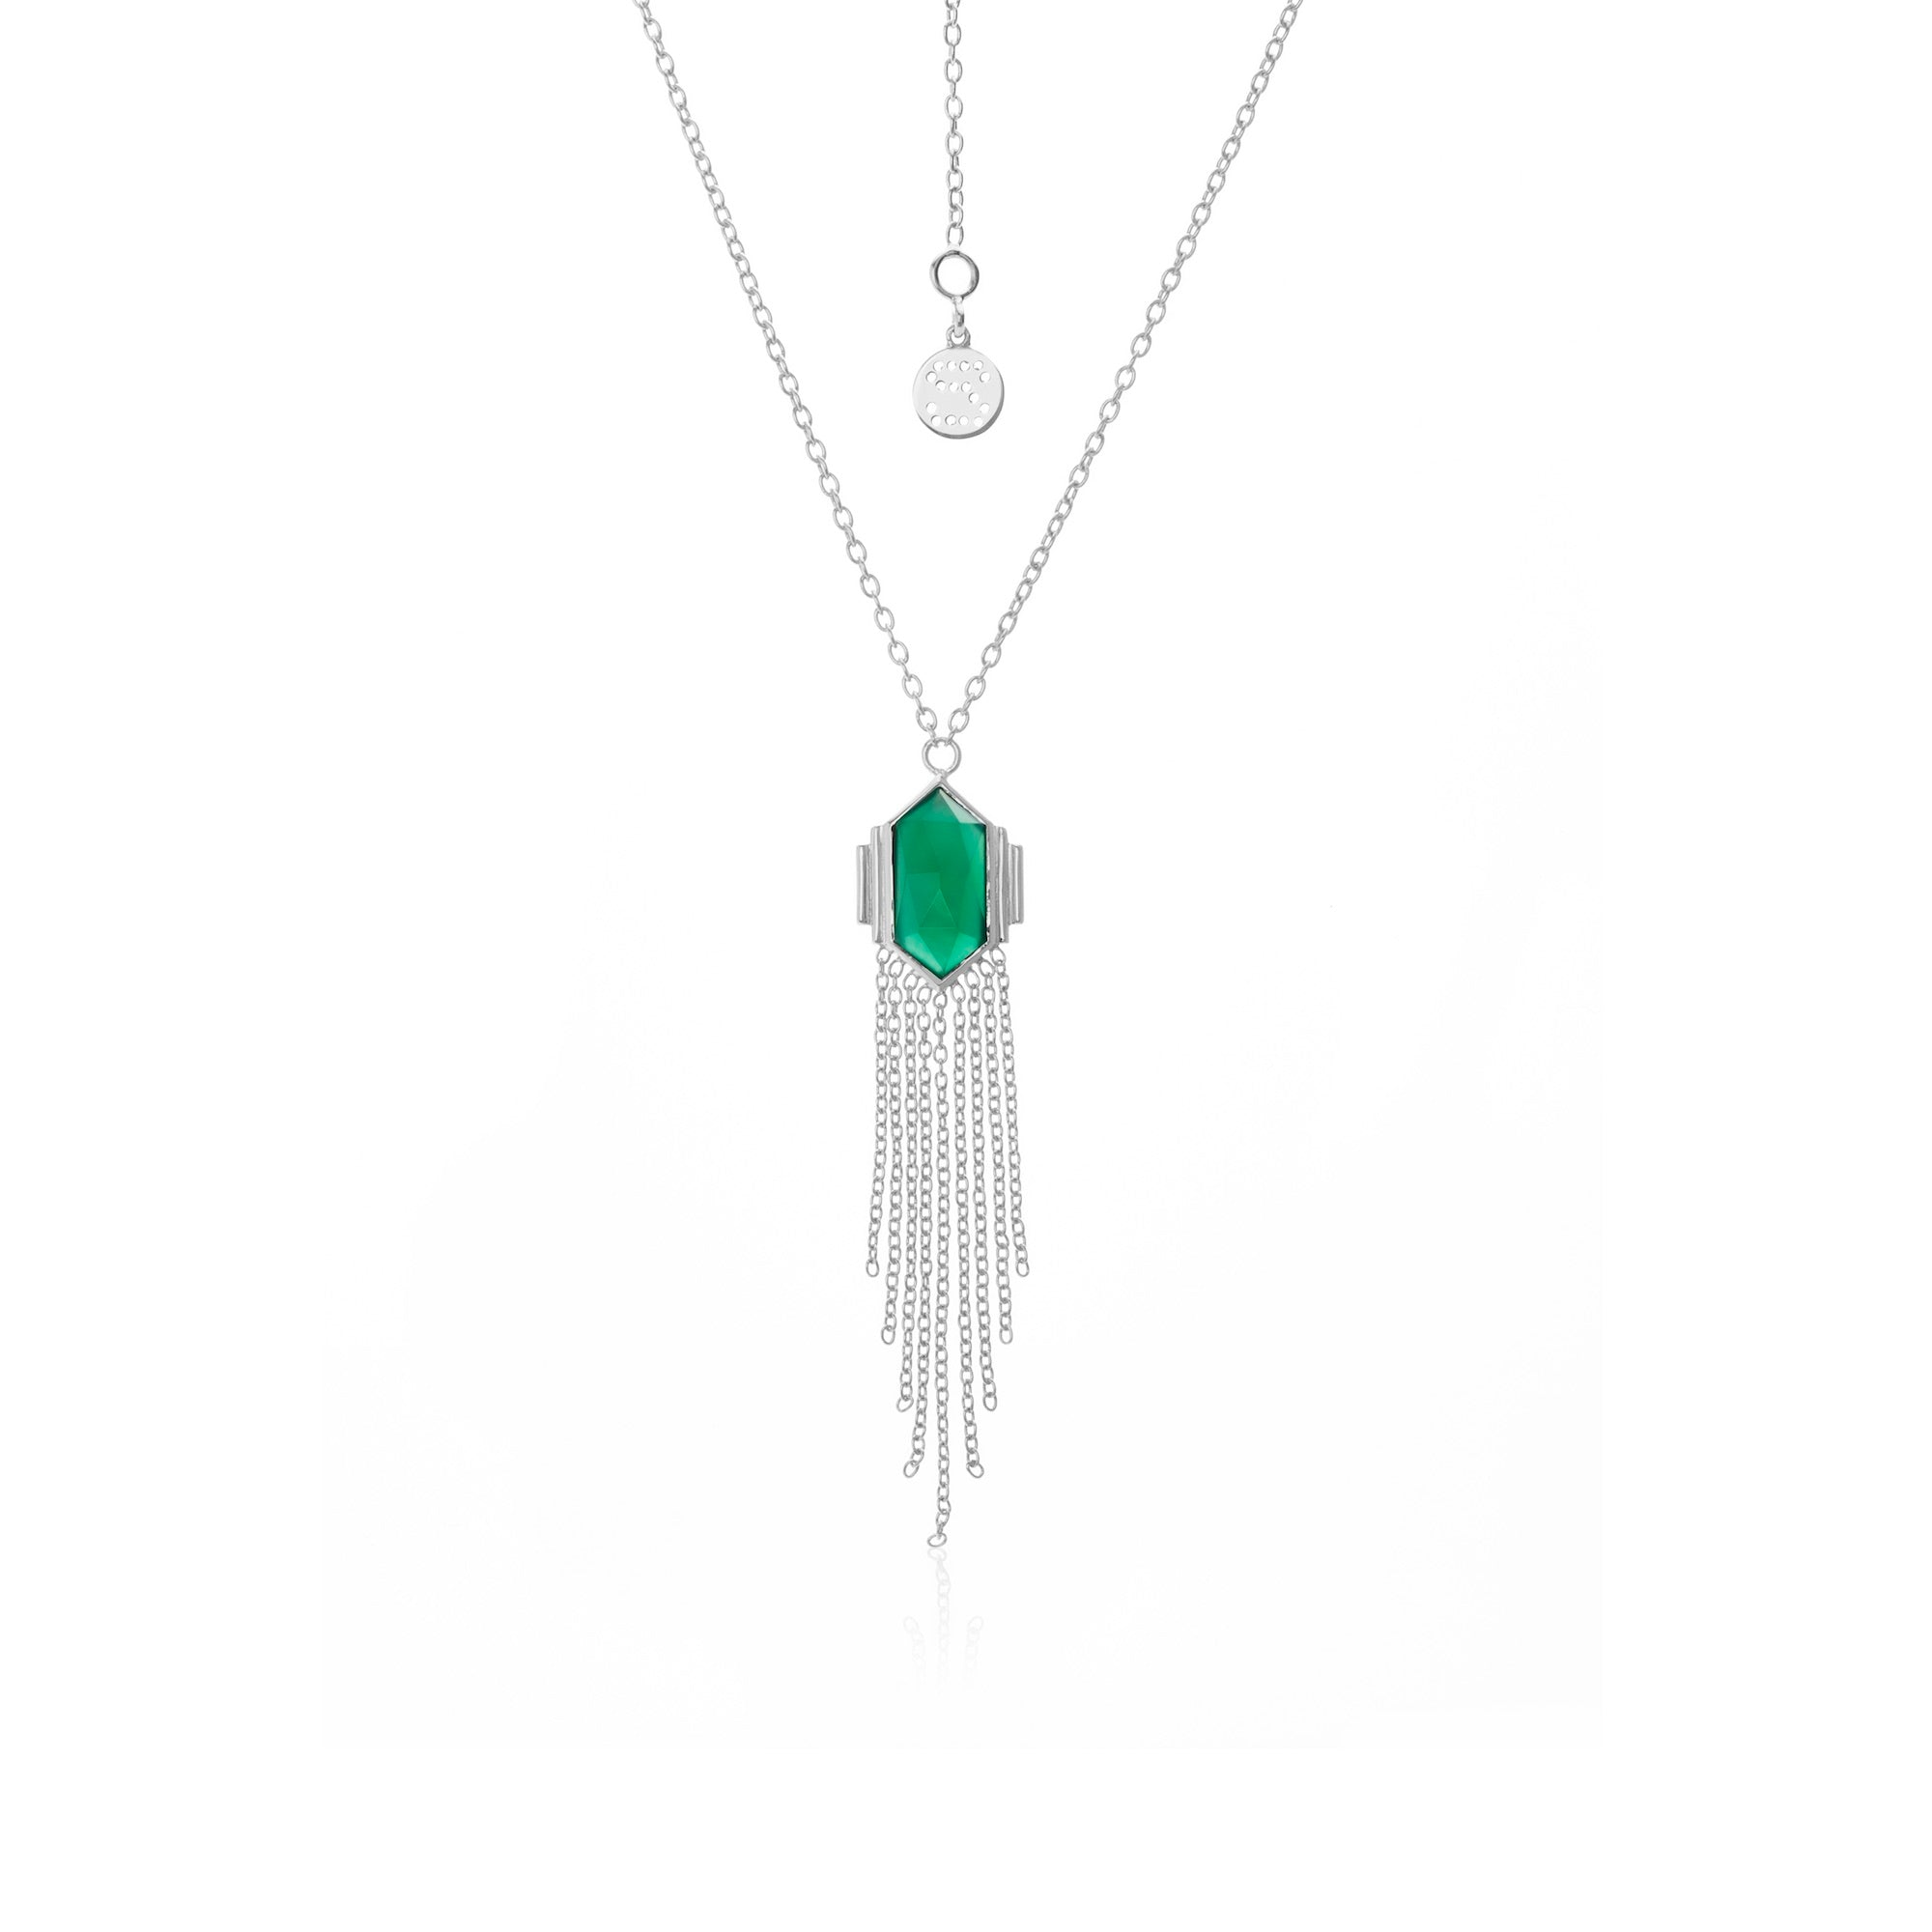 Silk & Steel Jewellery Glamour Fringe Necklace Green Onyx Silver